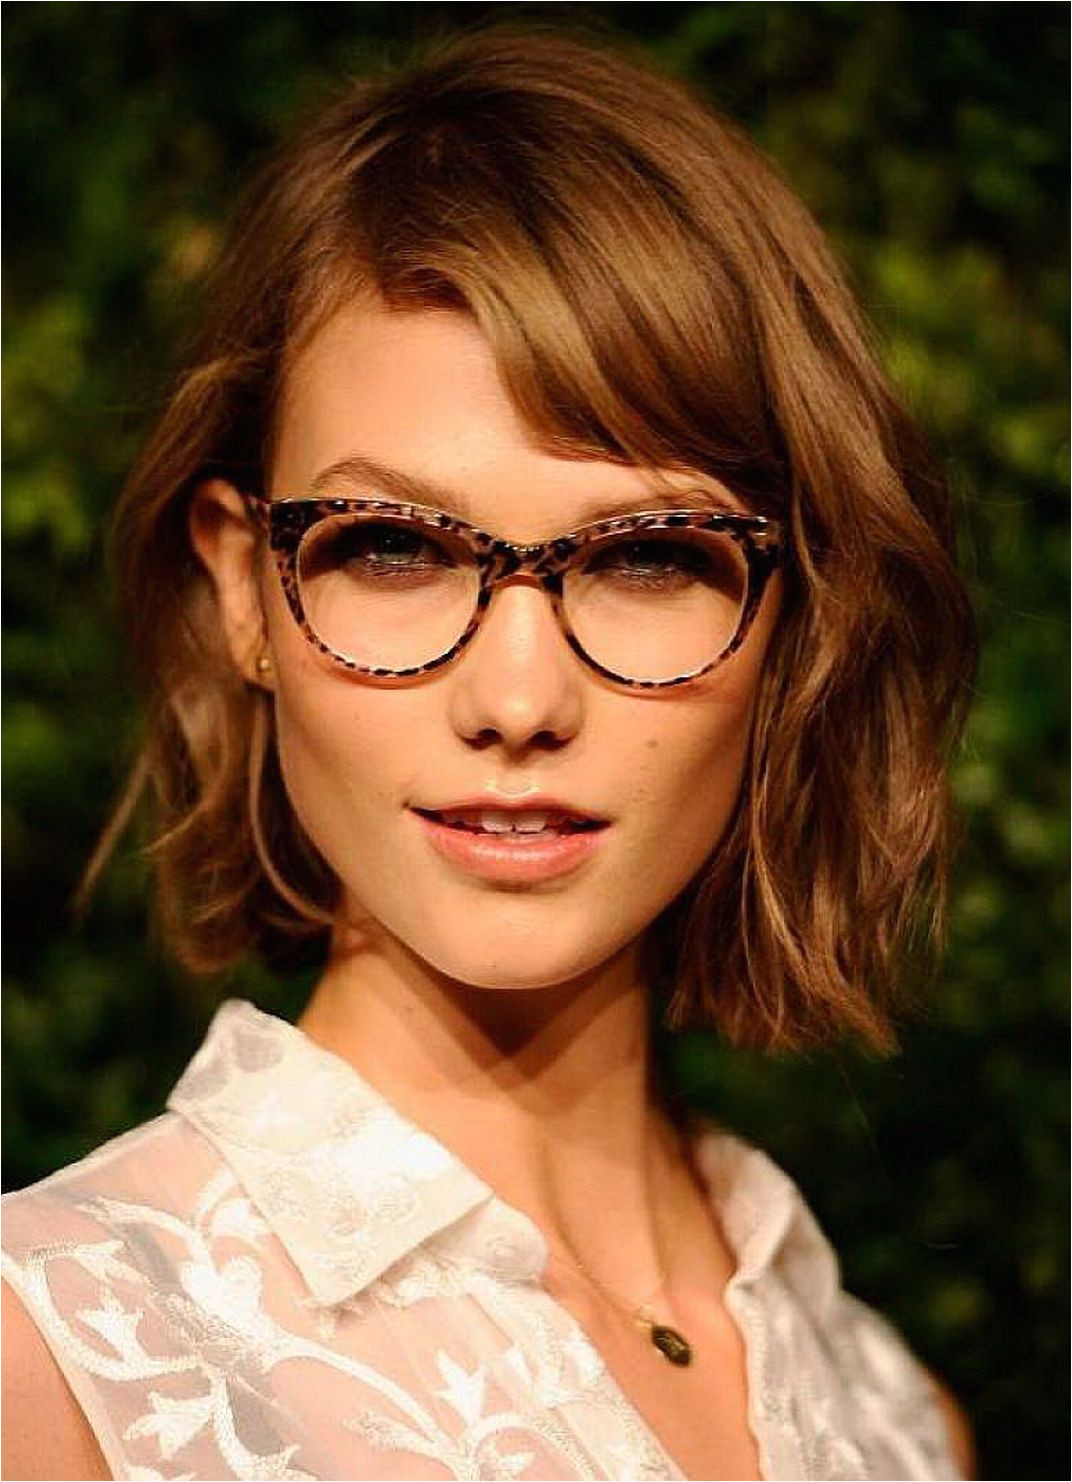 best wavy short hair hairstyles with side bangs for women with glasses